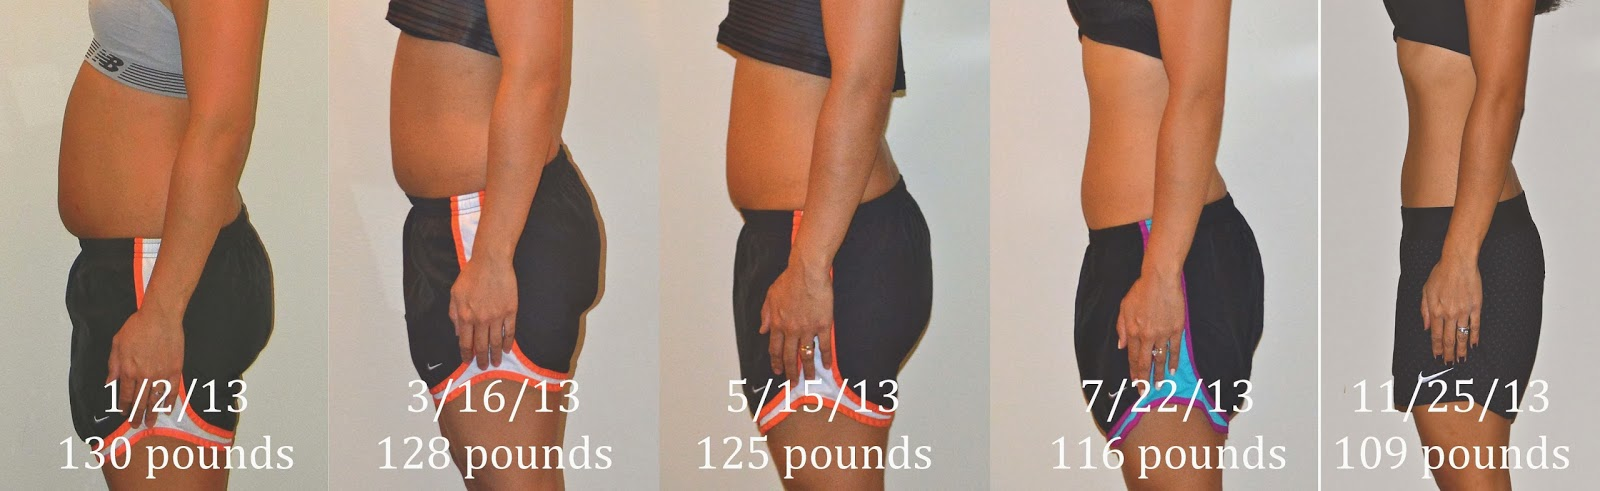 how to lose pregnancy weight in 3 months